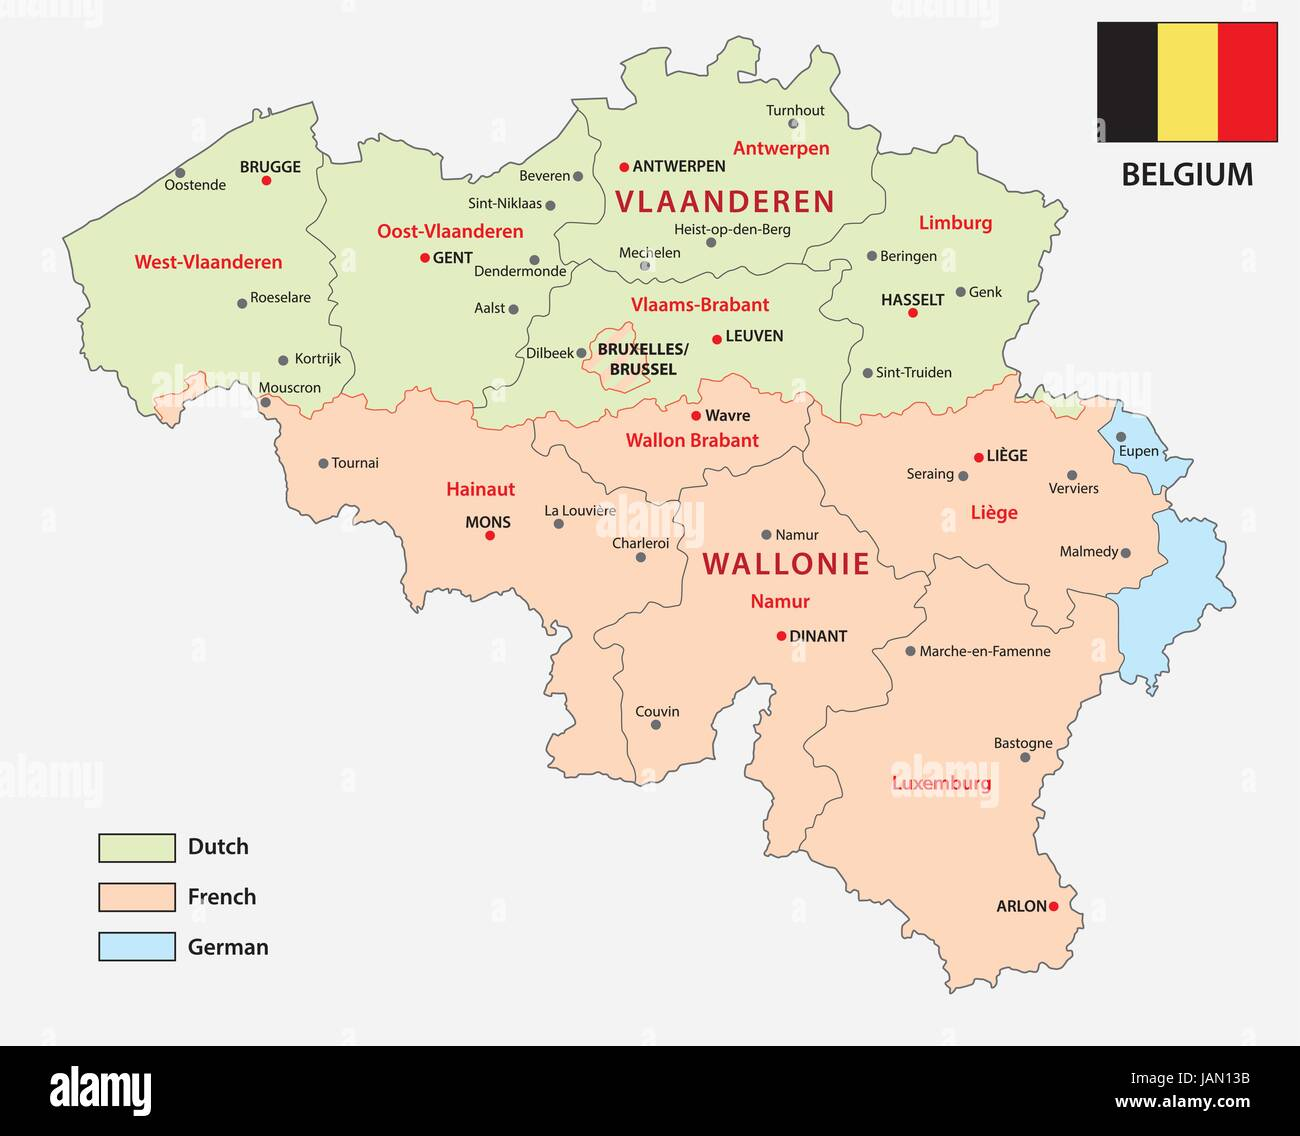 map of the belgian regions and language areas